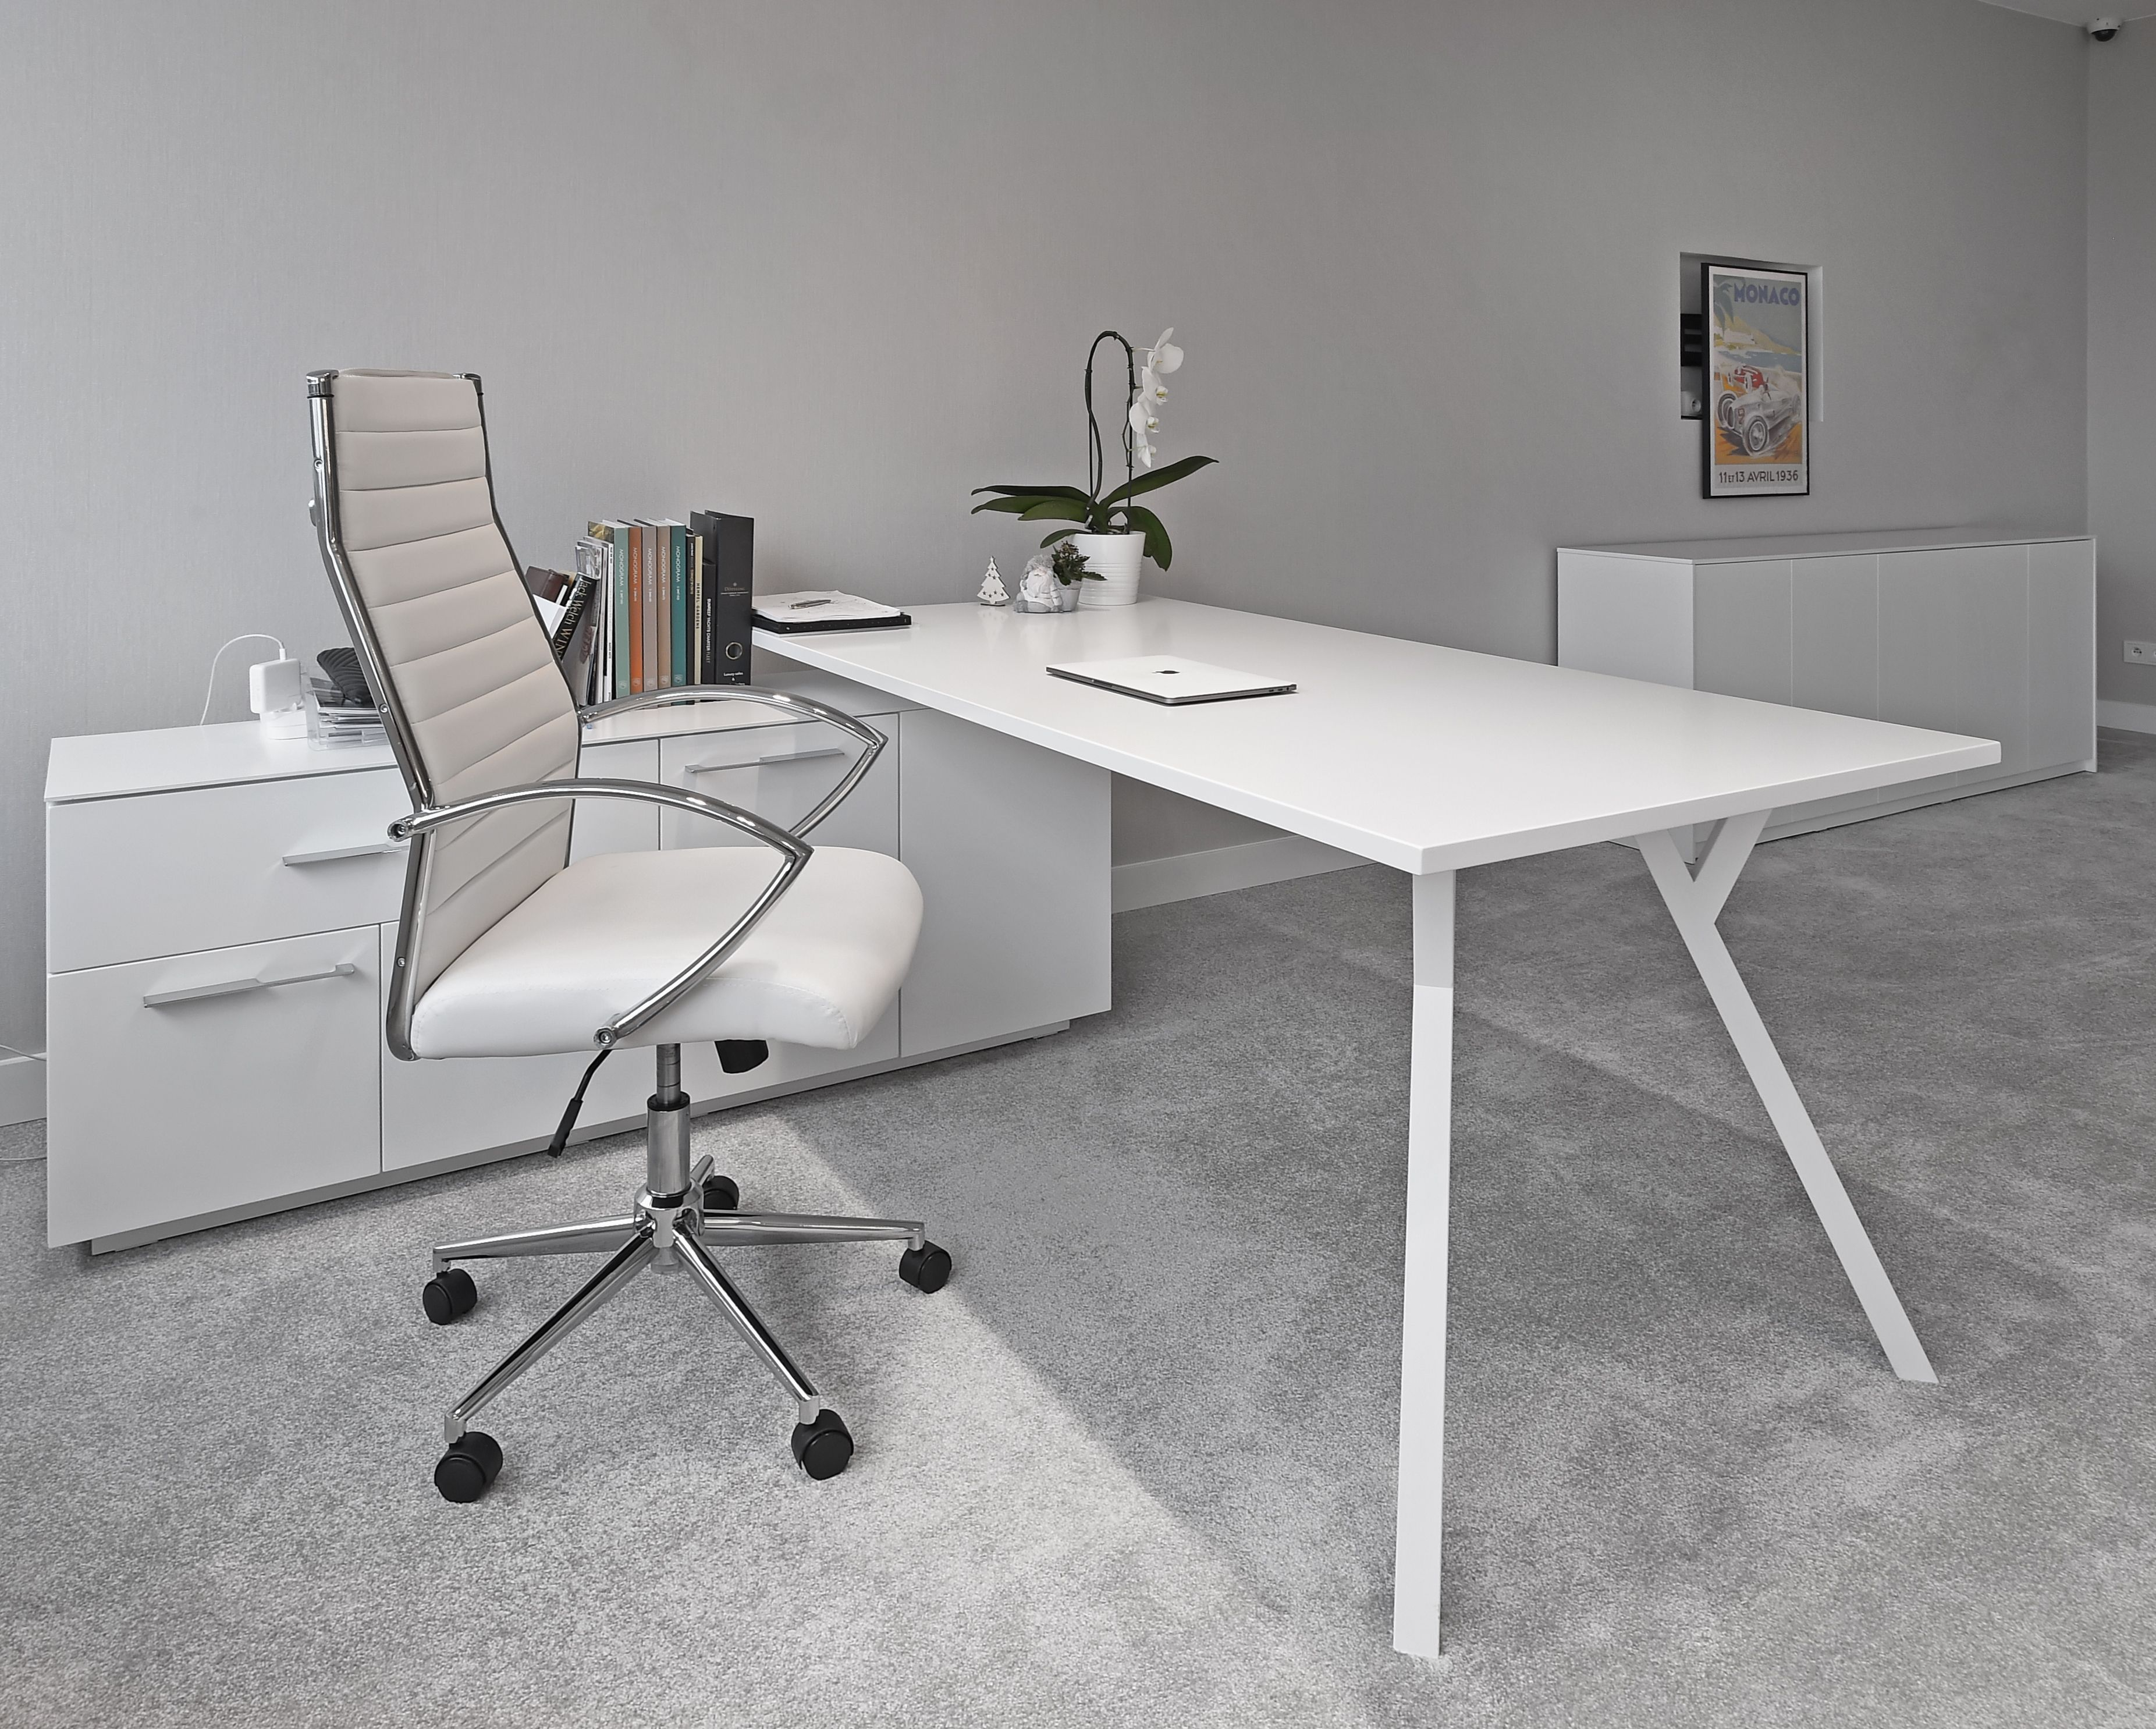 life furniture boise id check white office out used showroom our desk slc new